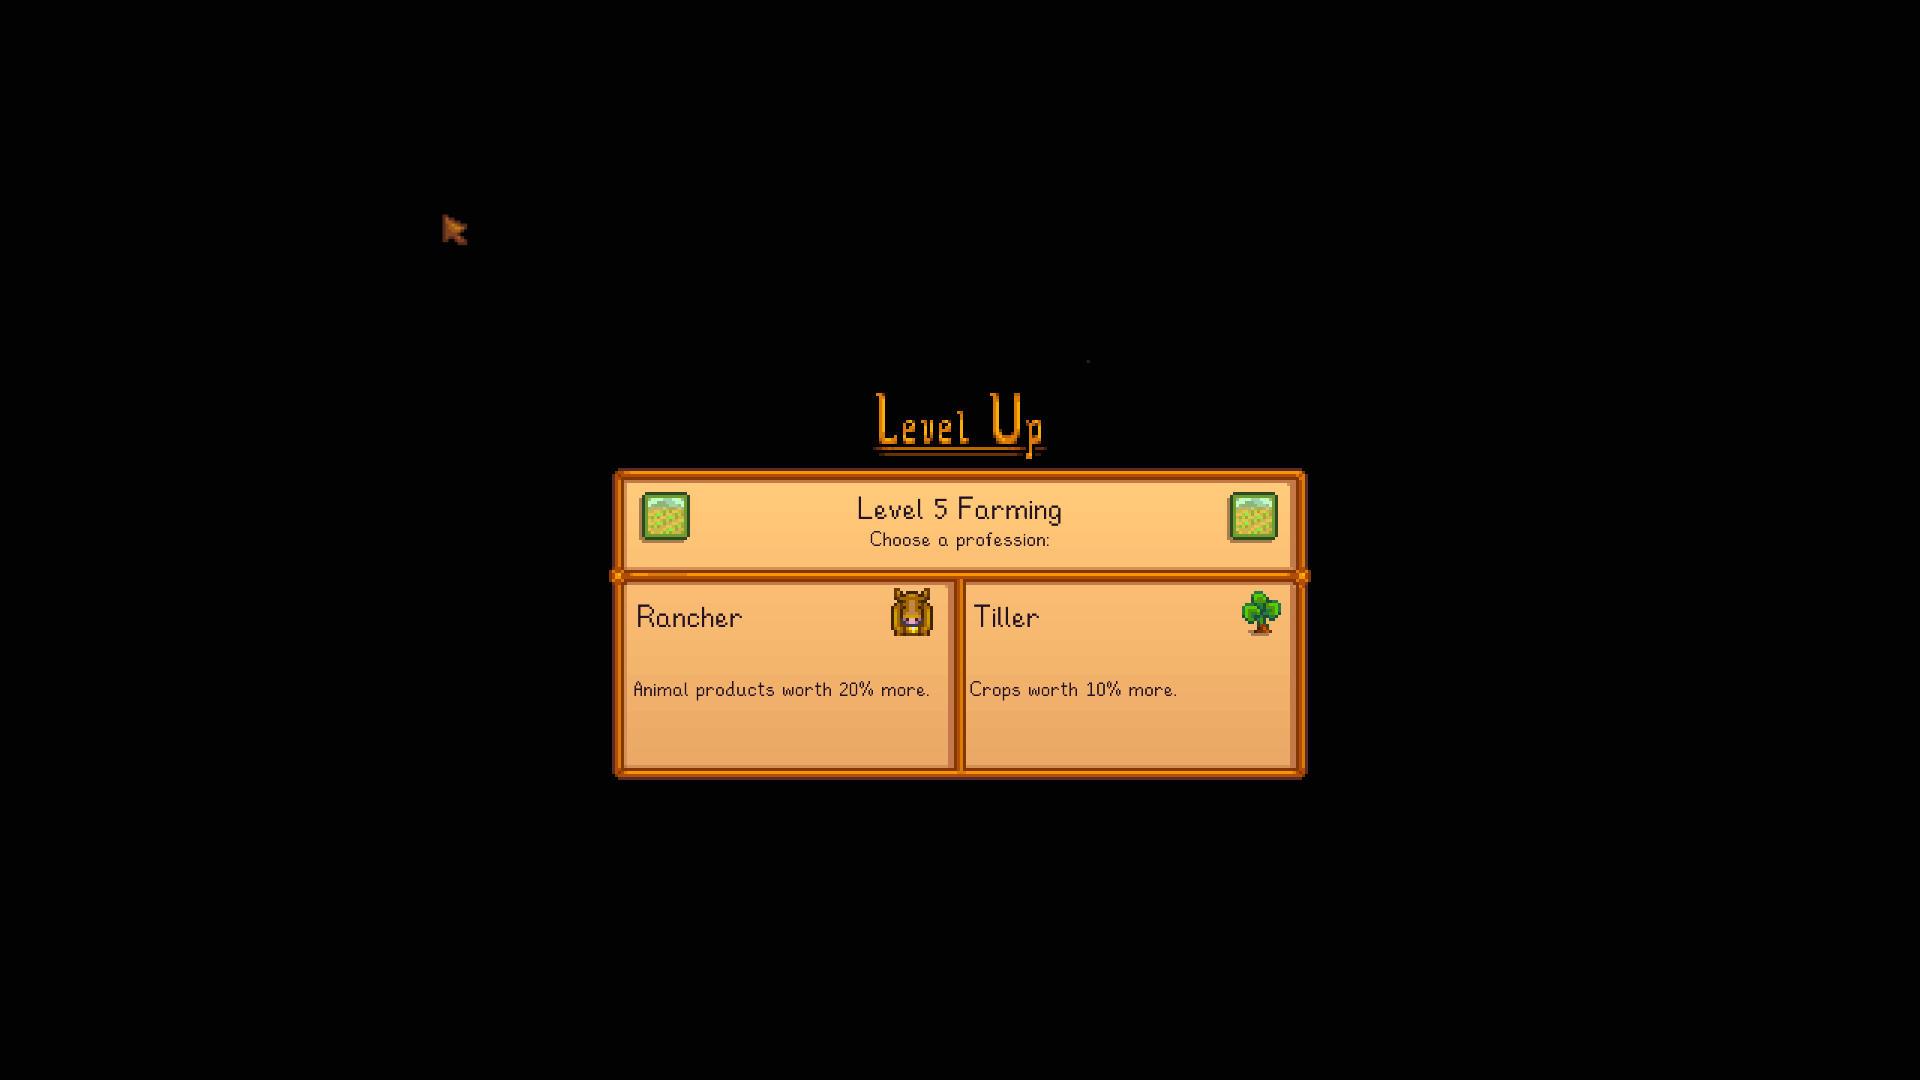 Official Stardew Valley Thread Gaming Level1techs Forums This was a glitch found by reddit user rippenn. official stardew valley thread gaming